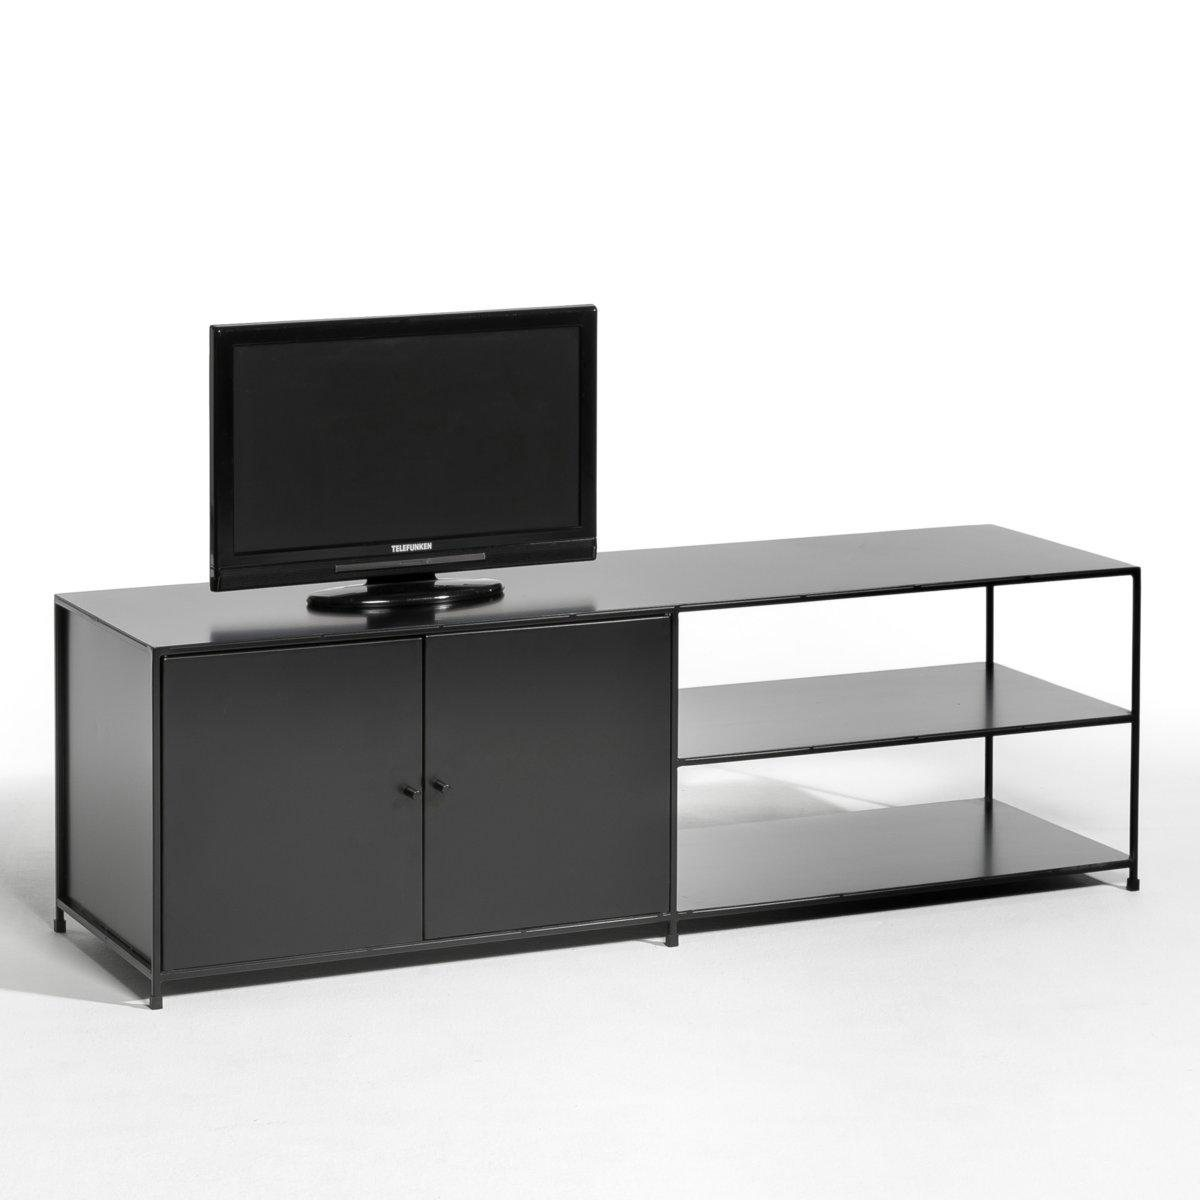 la redoute soldes meubles buffet meuble de mercerie 9. Black Bedroom Furniture Sets. Home Design Ideas